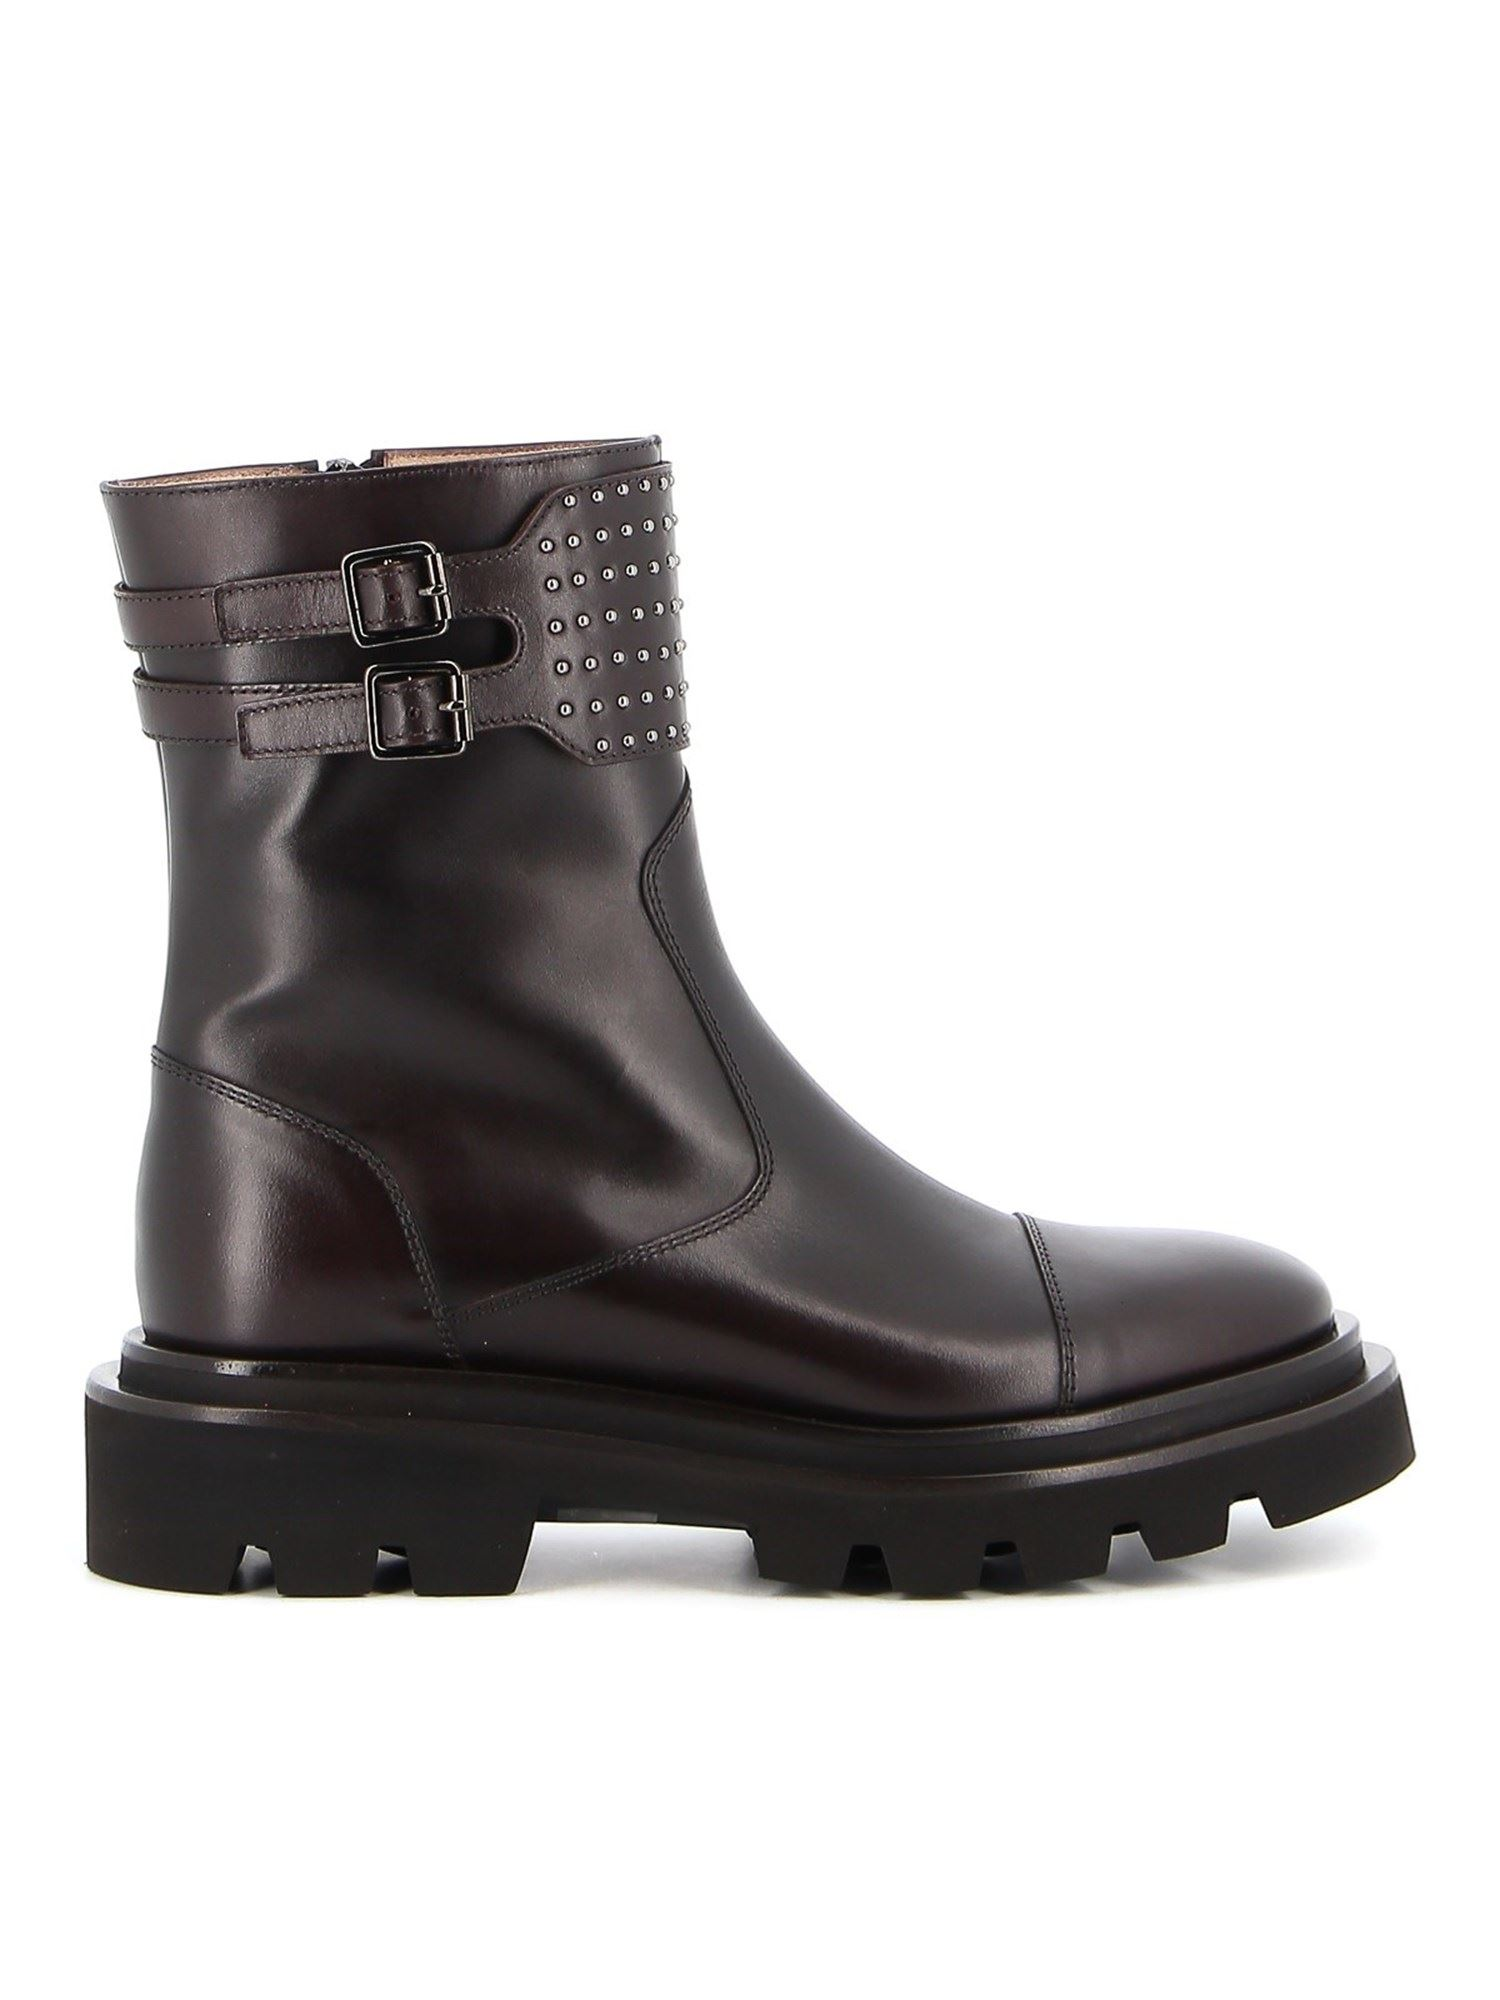 Fabiana Filippi STUDDED ANKLE BOOTS IN BROWN